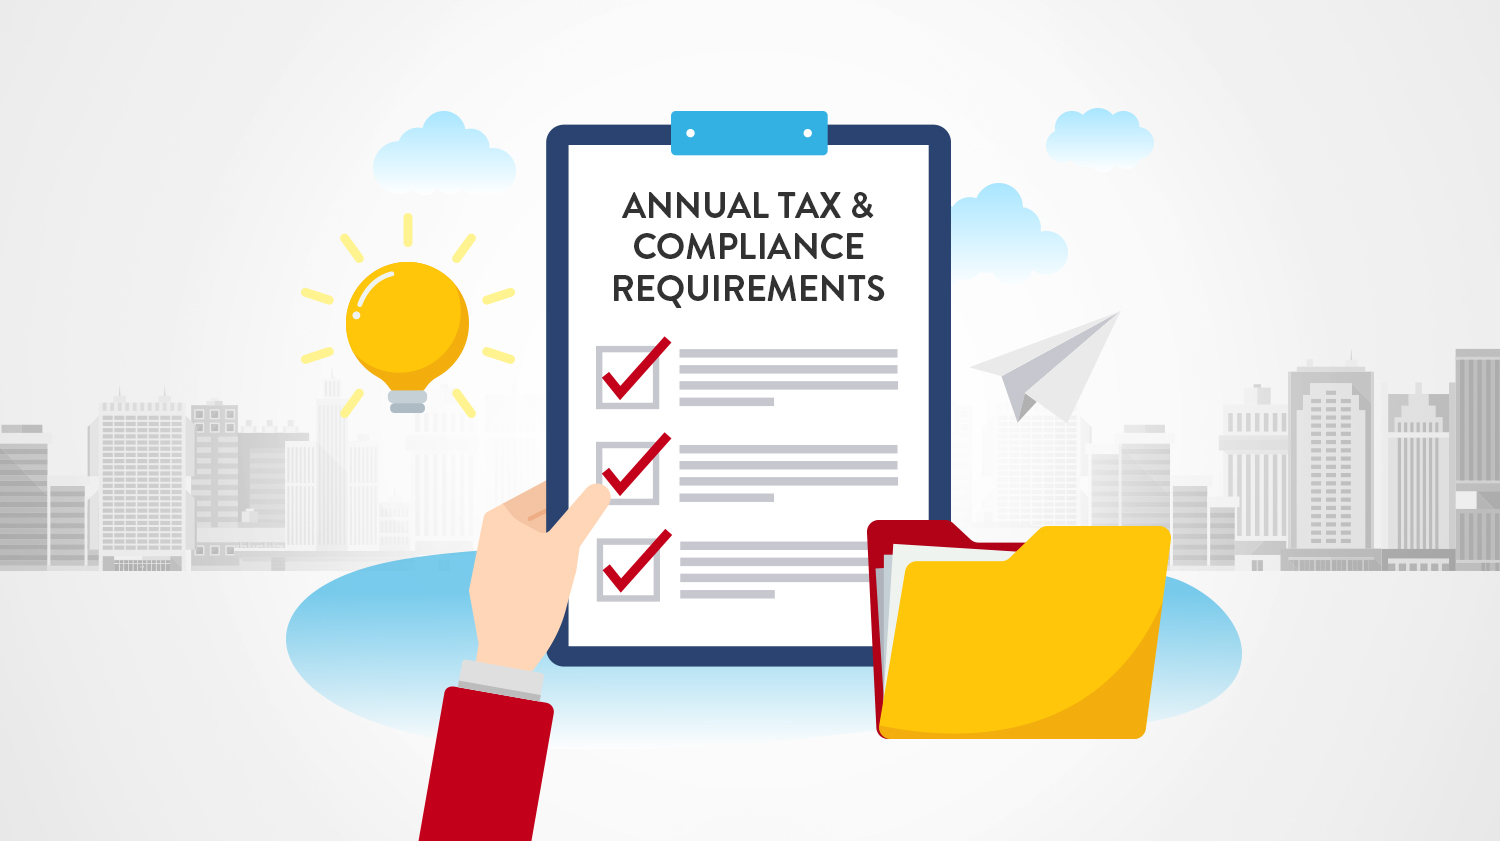 Don't forget about your annual tax and compliance deadlines this January